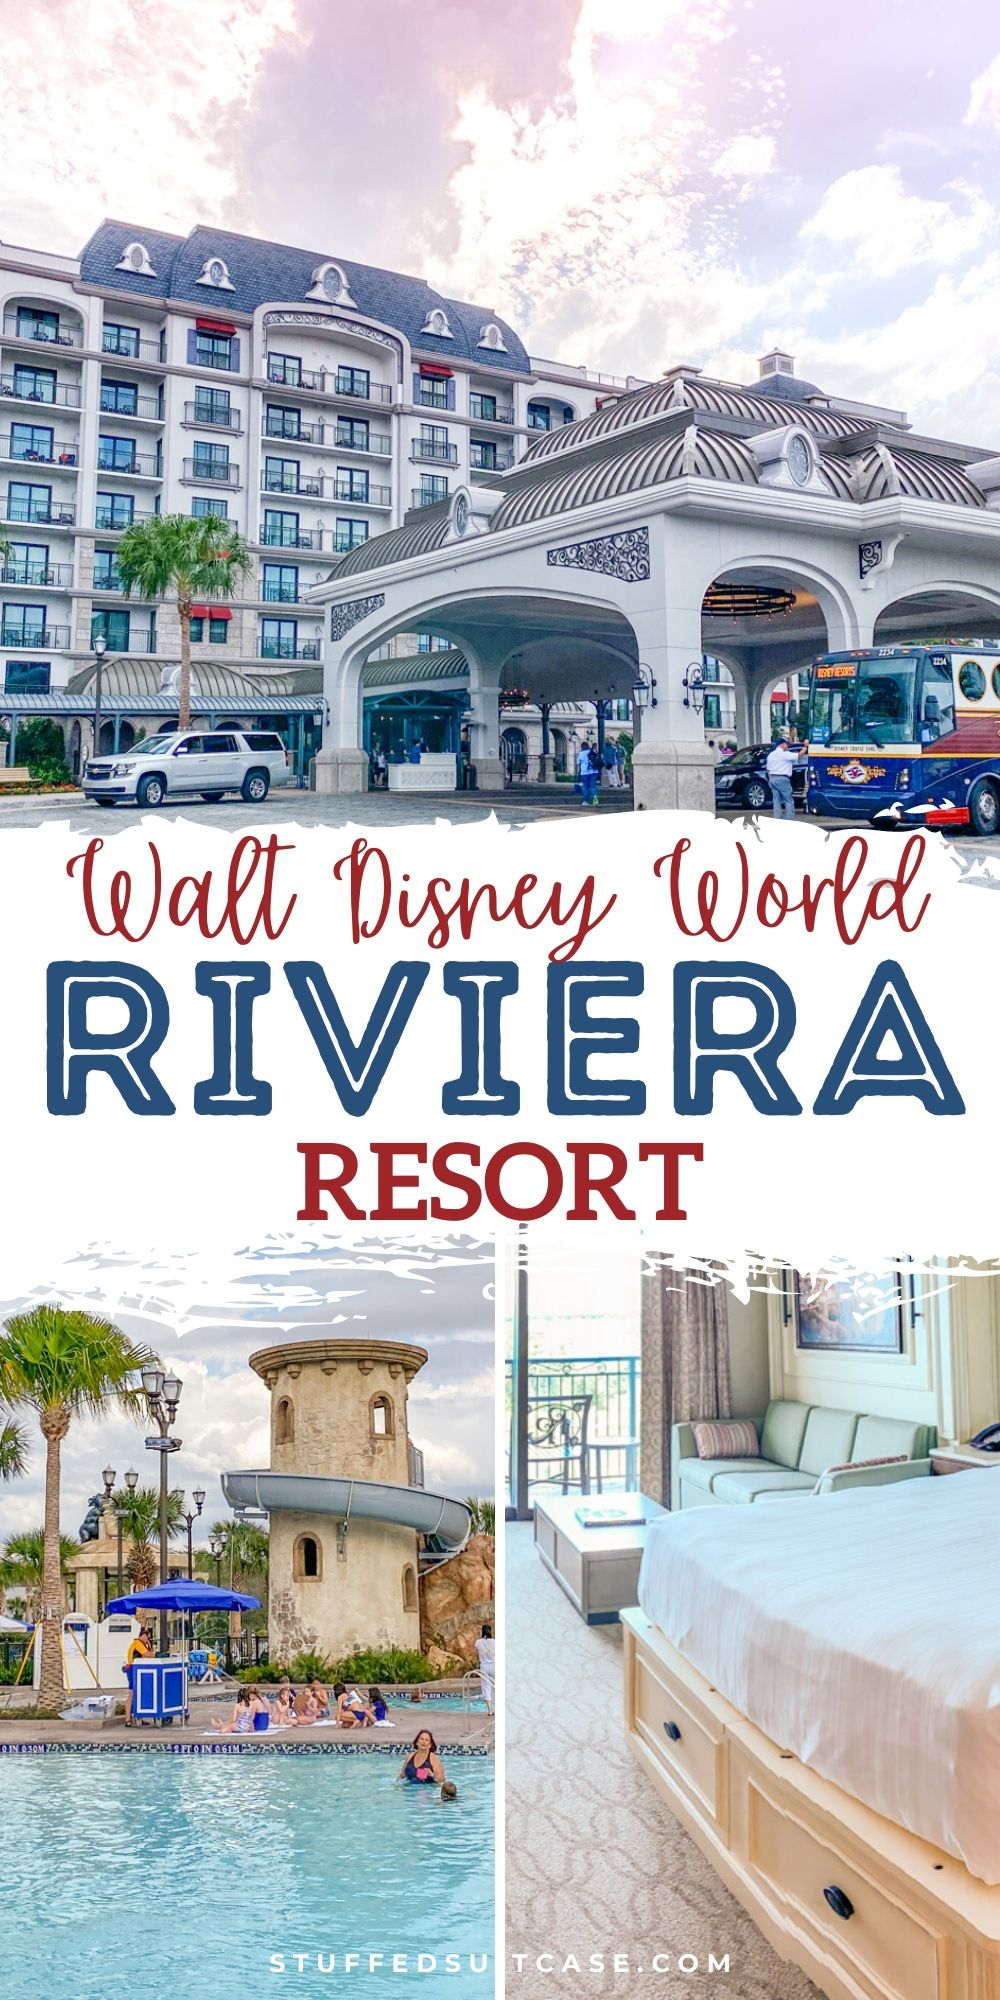 riviera resort image collage for pinterest